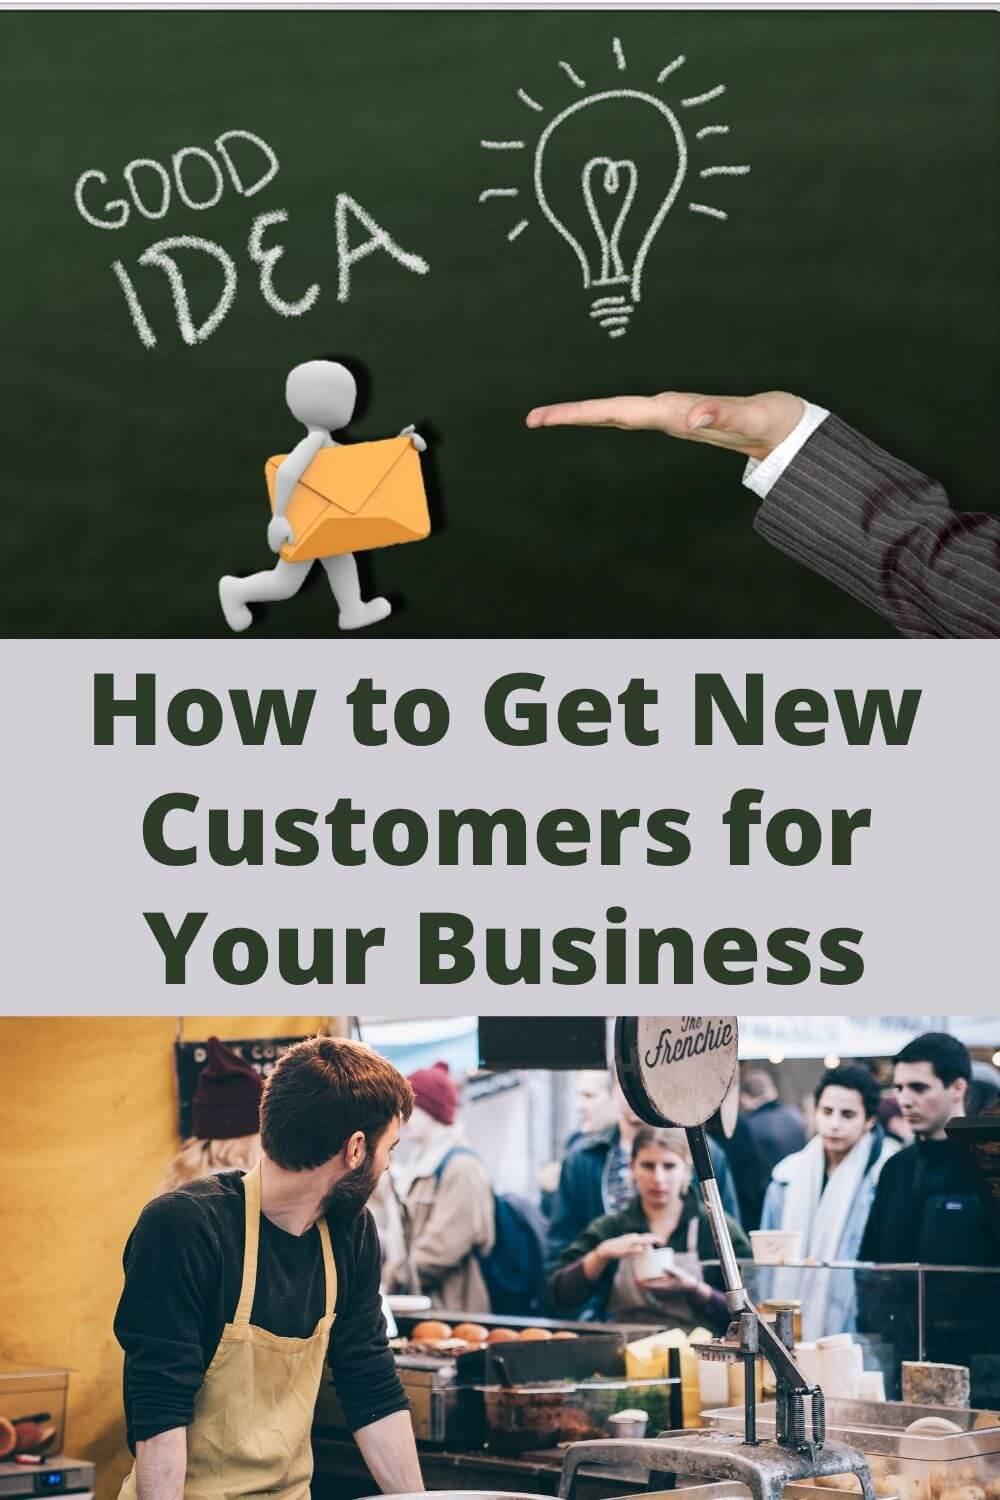 How to Get New Customers for Your Business